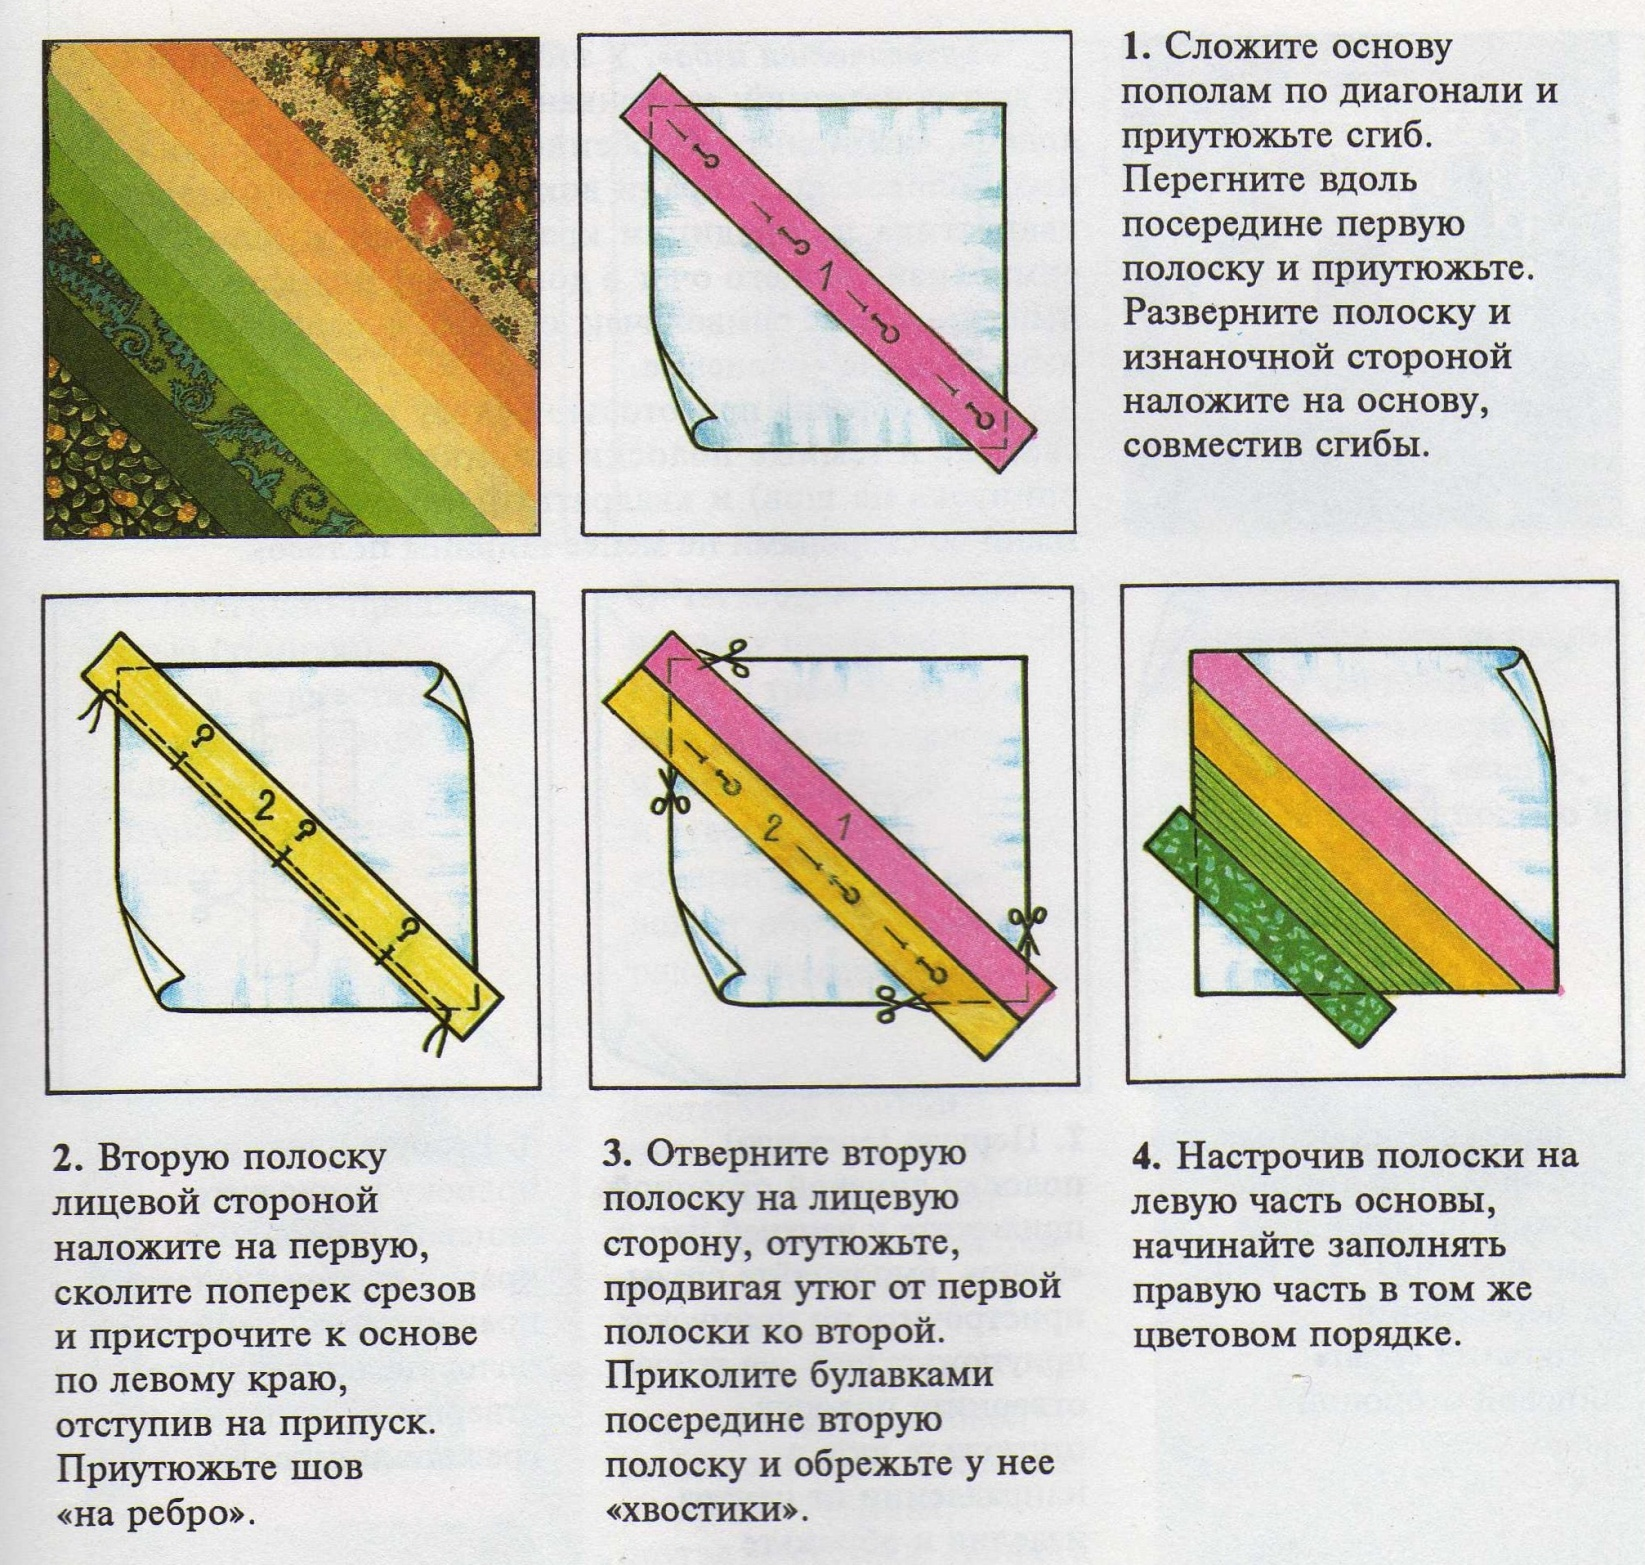 C:\Users\Карина\Pictures\img754.jpg